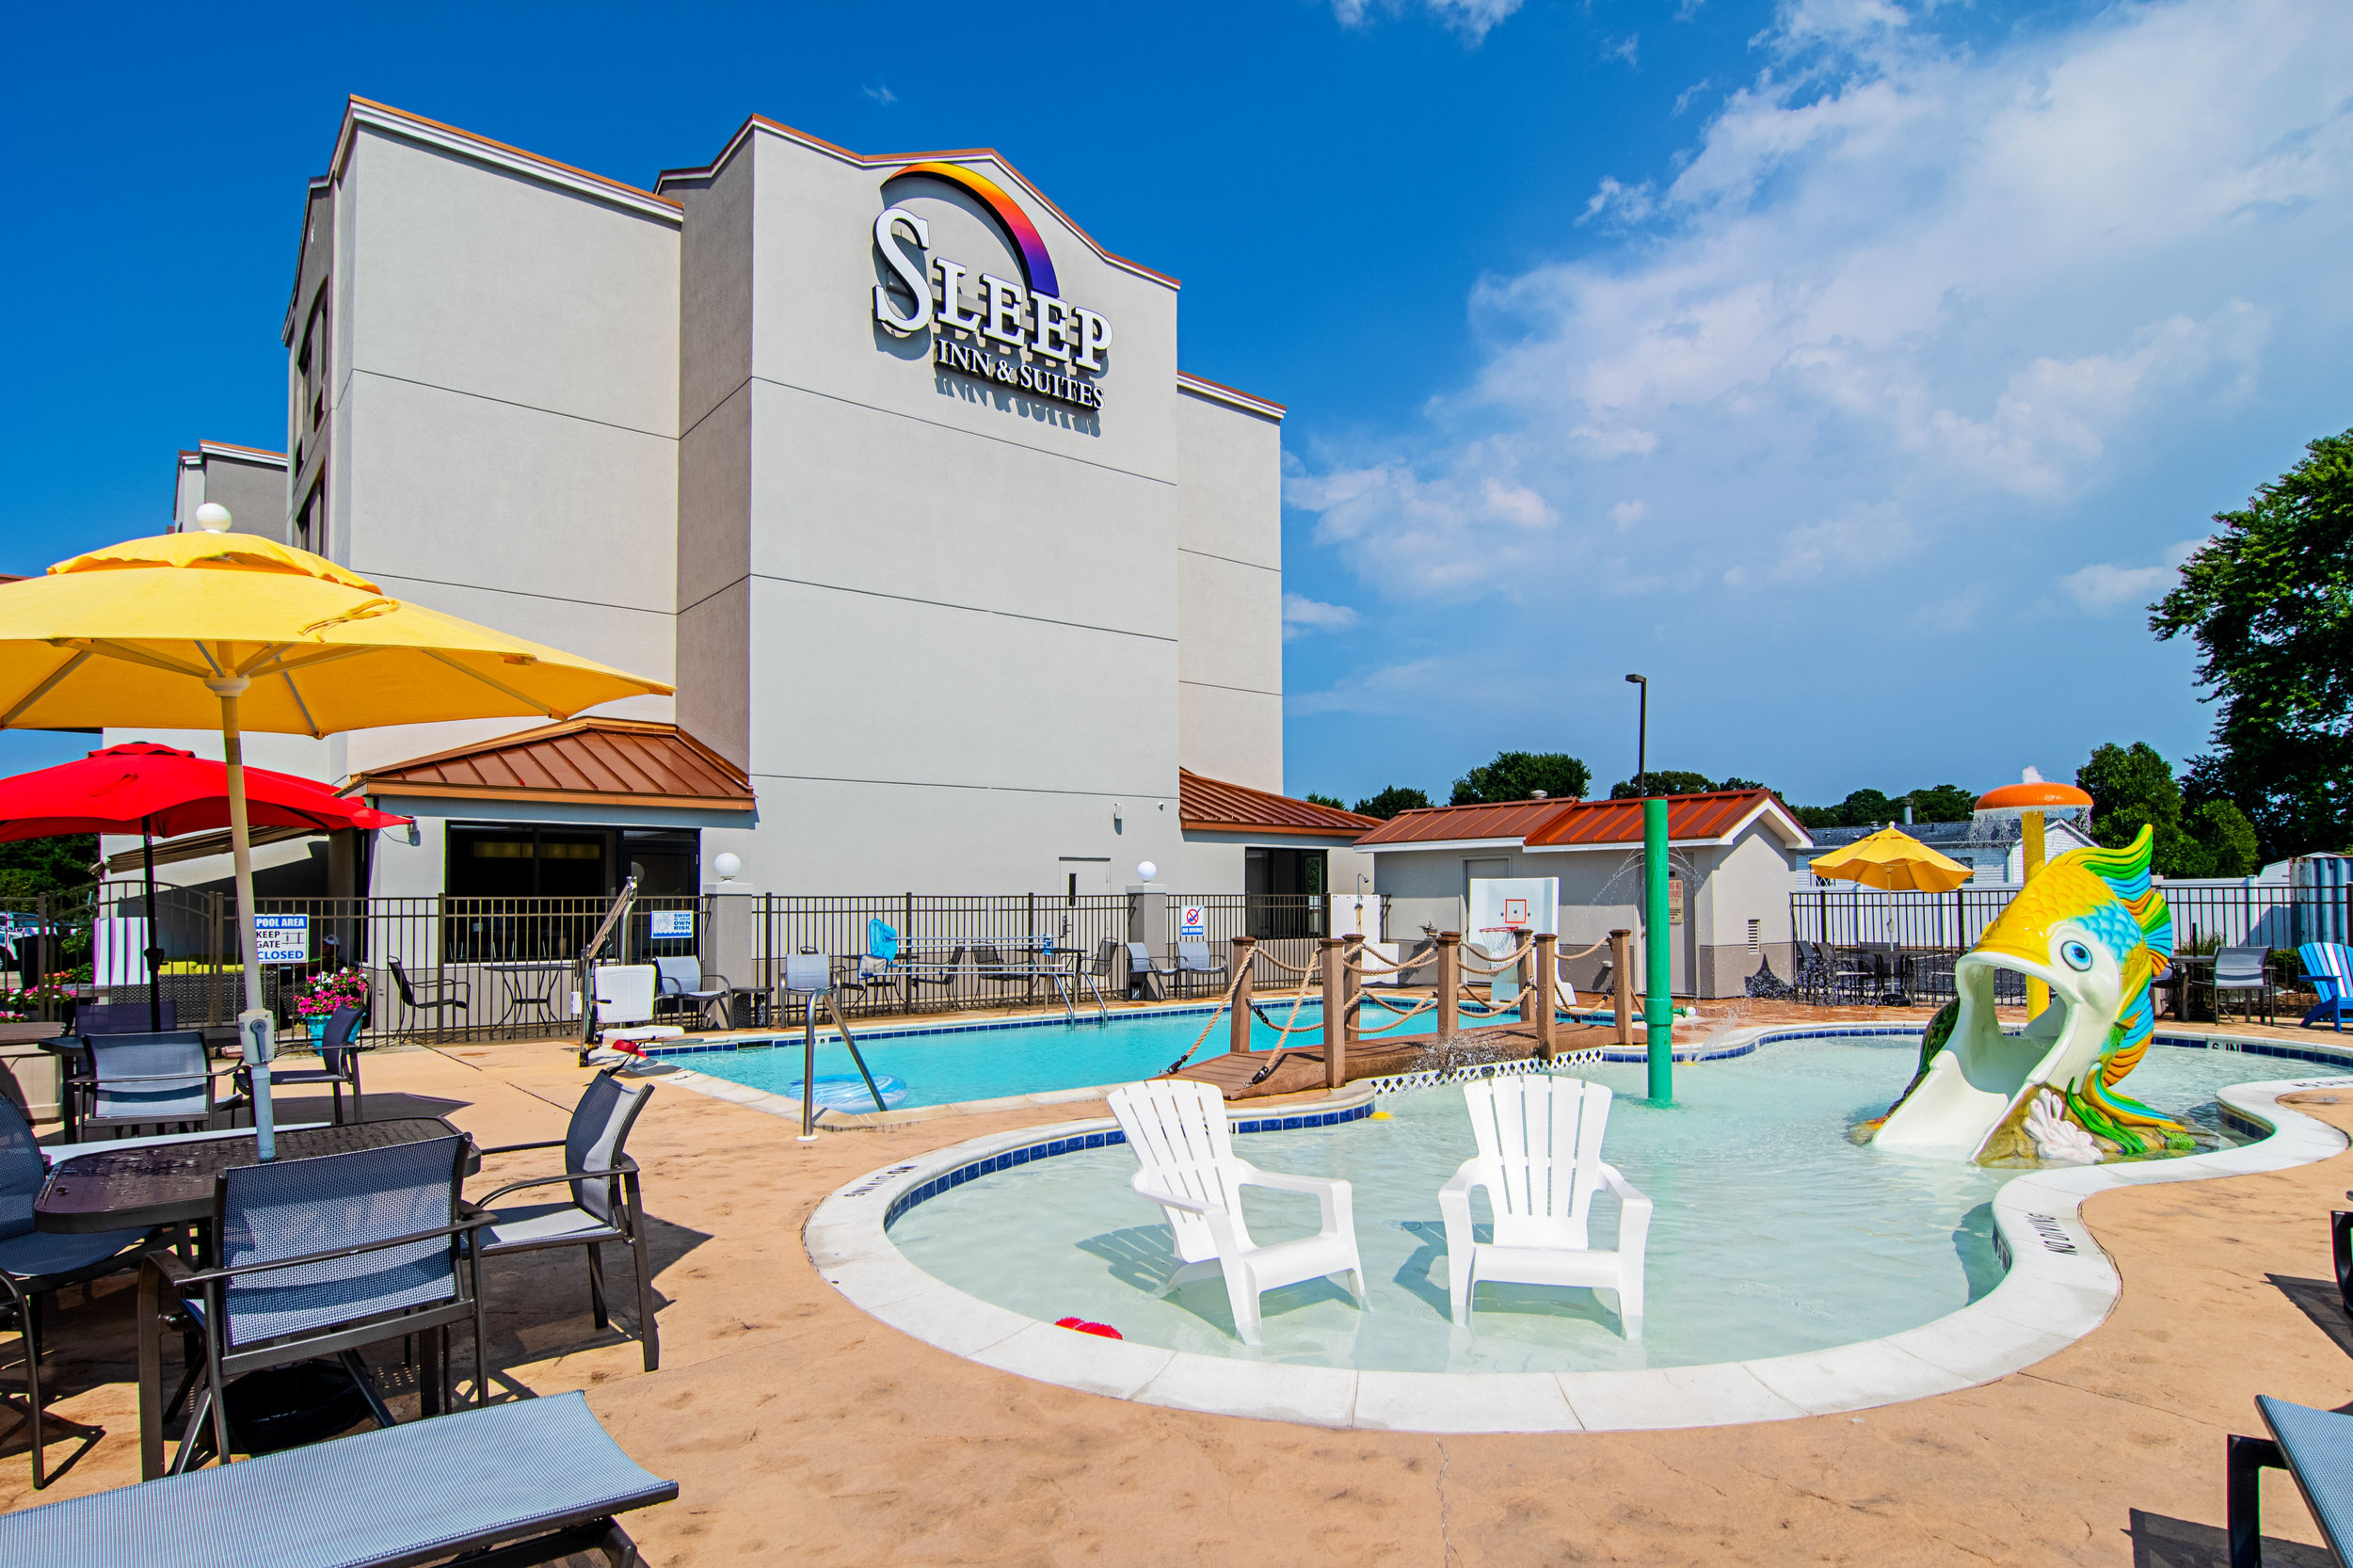 Sleep Inn and Suites Lewes   Outdoor Pool, Breakfast  13 miles  302-645-6464